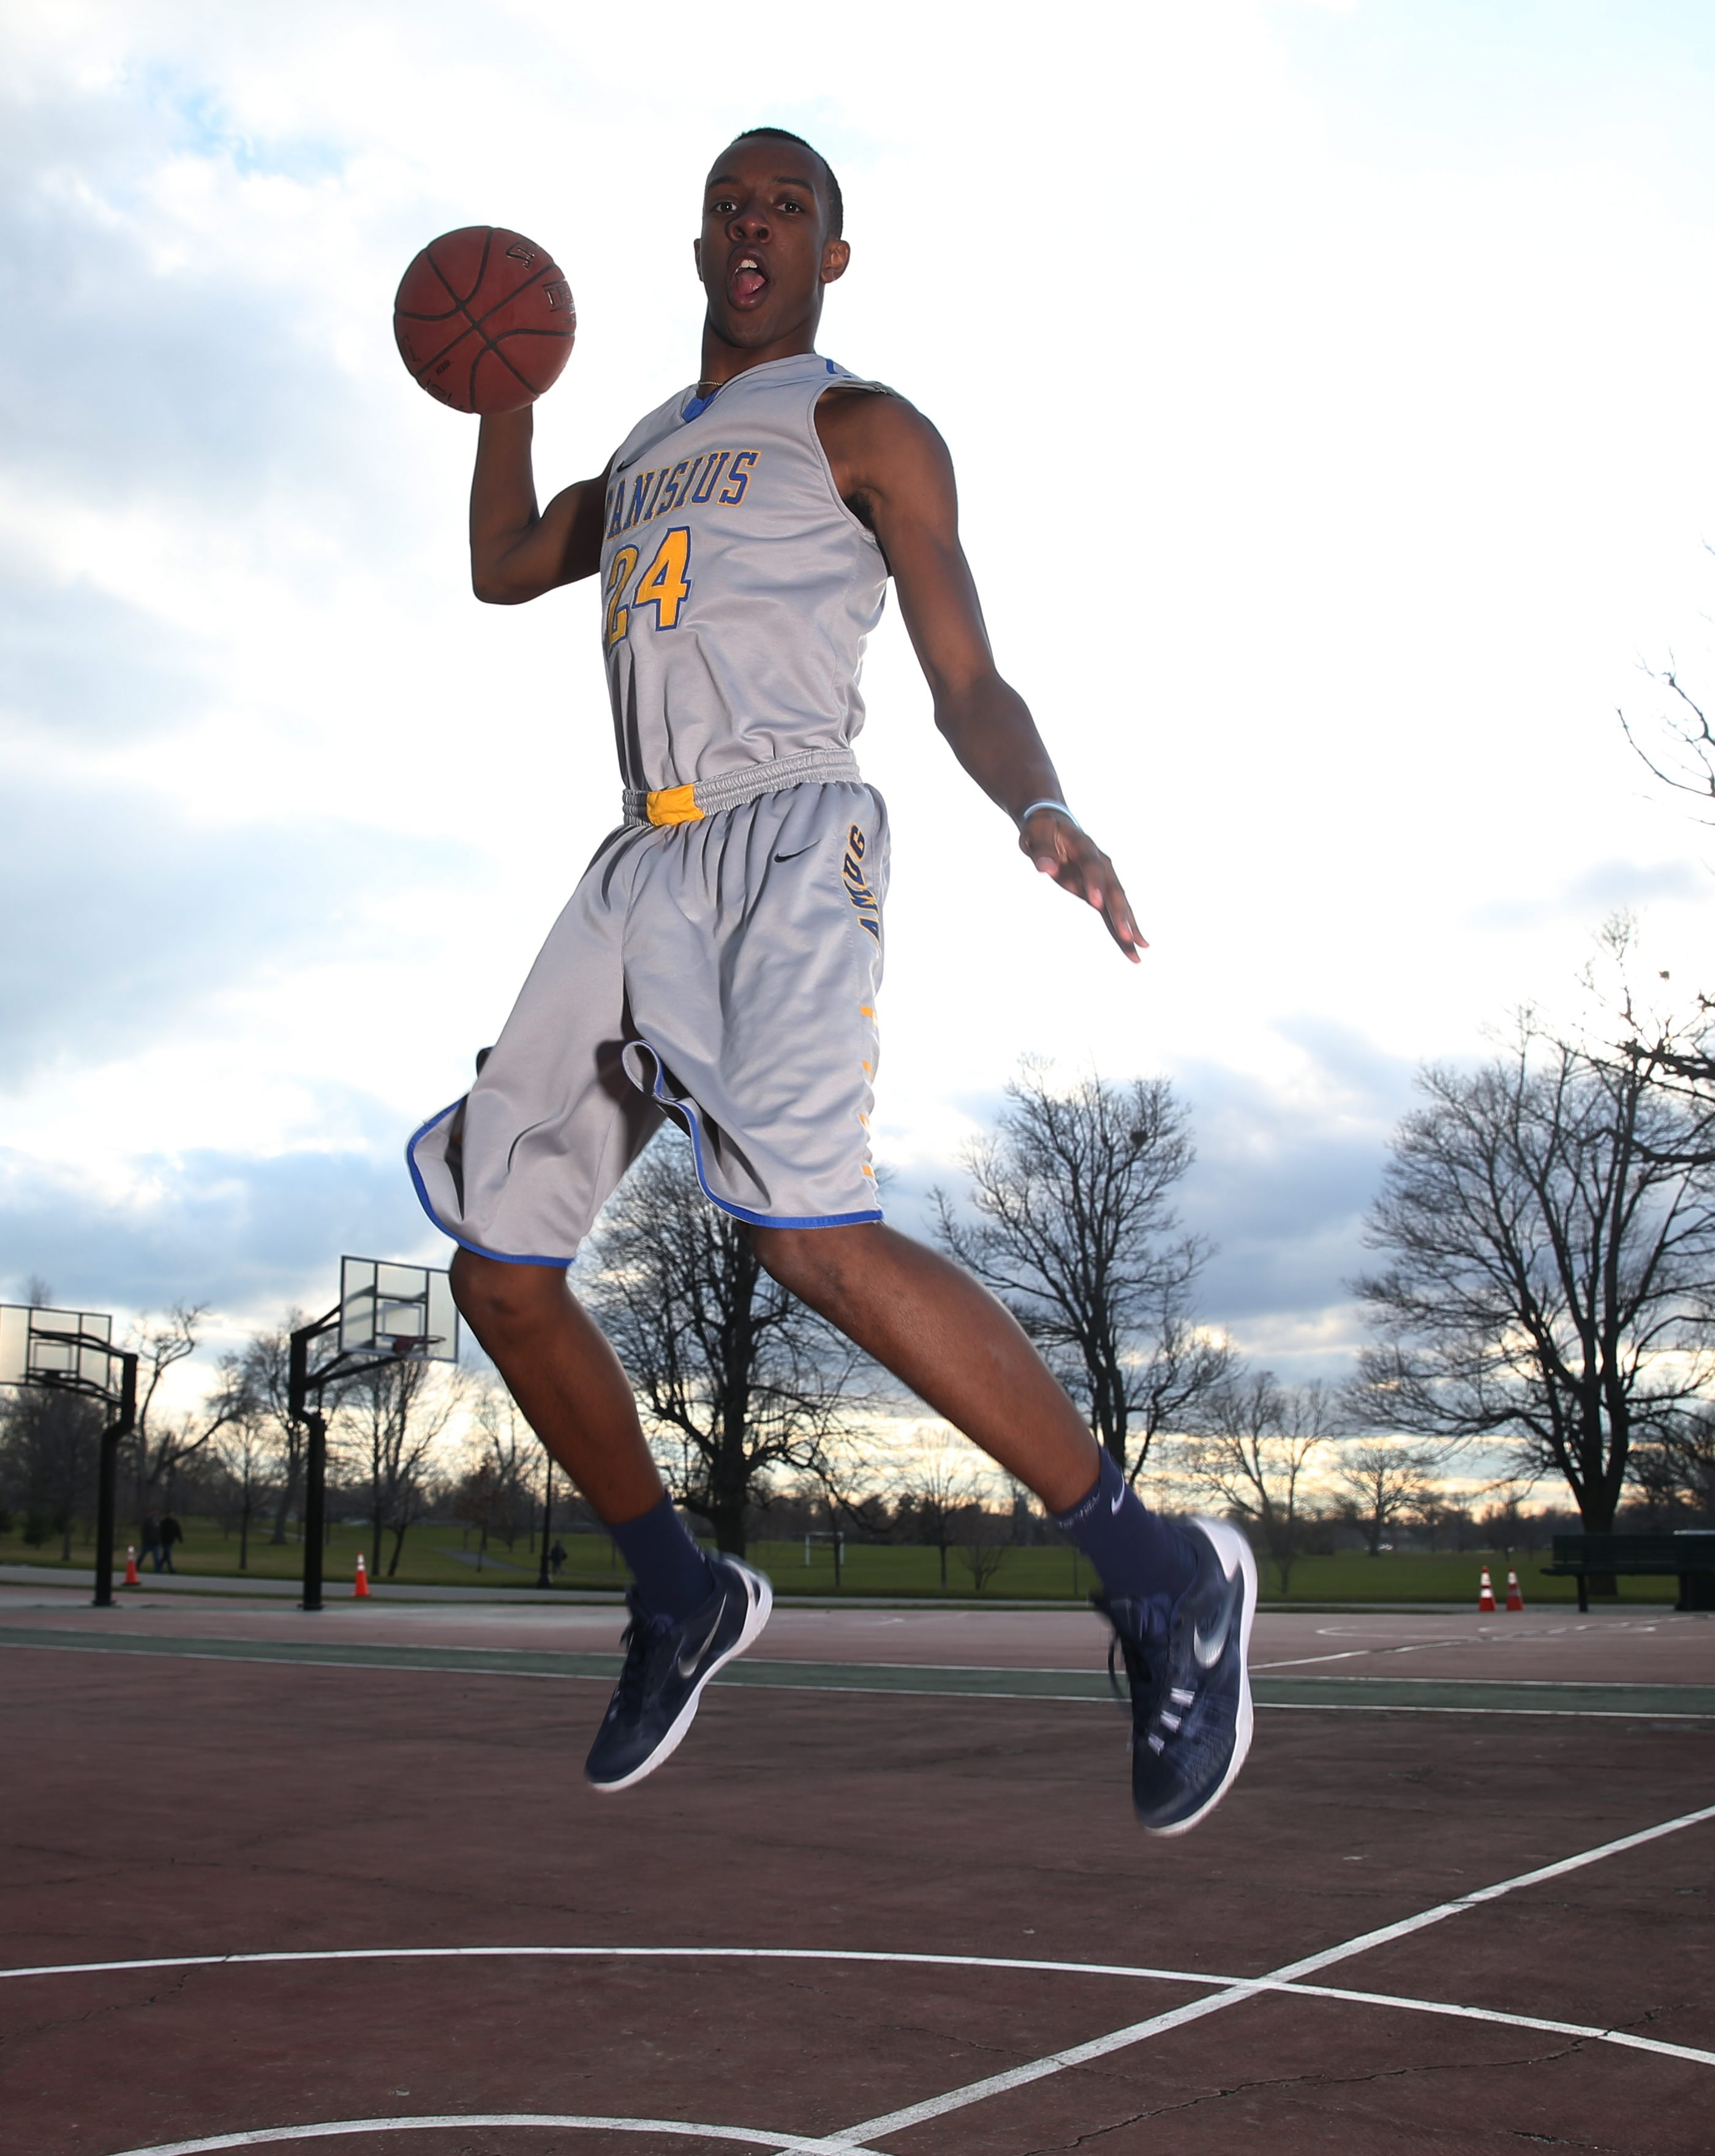 Stafford Truehart averaged 20.8 points, 10.5 rebounds and 2.5 blocks per game to pace Canisius to a program-record 26 victories.